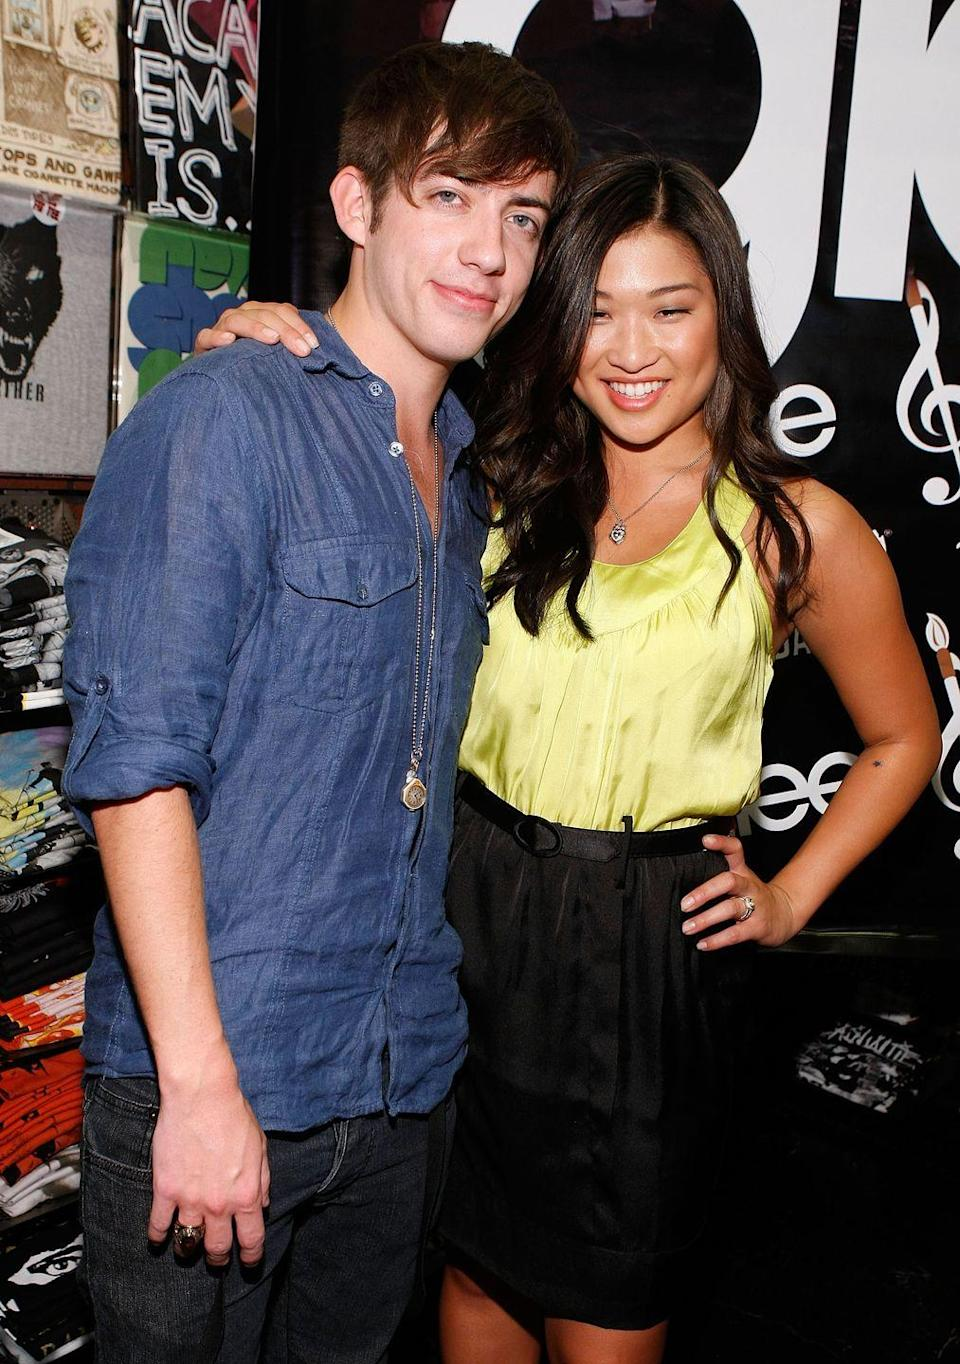 """<p><a href=""""https://glee.fandom.com/wiki/Jenna_Ushkowitz"""" rel=""""nofollow noopener"""" target=""""_blank"""" data-ylk=""""slk:Jenna Ushkowitz and Kevin McHale were roommates"""" class=""""link rapid-noclick-resp"""">Jenna Ushkowitz and Kevin McHale were roommates</a> while working on <em>Glee</em>, and they often hosted cast parties. The two are still working together, too. They have a podcast called <em><a href=""""https://www.podcastone.com/showmance-with-kevin-mchale-and-jenna-ushkowitz"""" rel=""""nofollow noopener"""" target=""""_blank"""" data-ylk=""""slk:Showmance"""" class=""""link rapid-noclick-resp"""">Showmance</a></em>.</p>"""